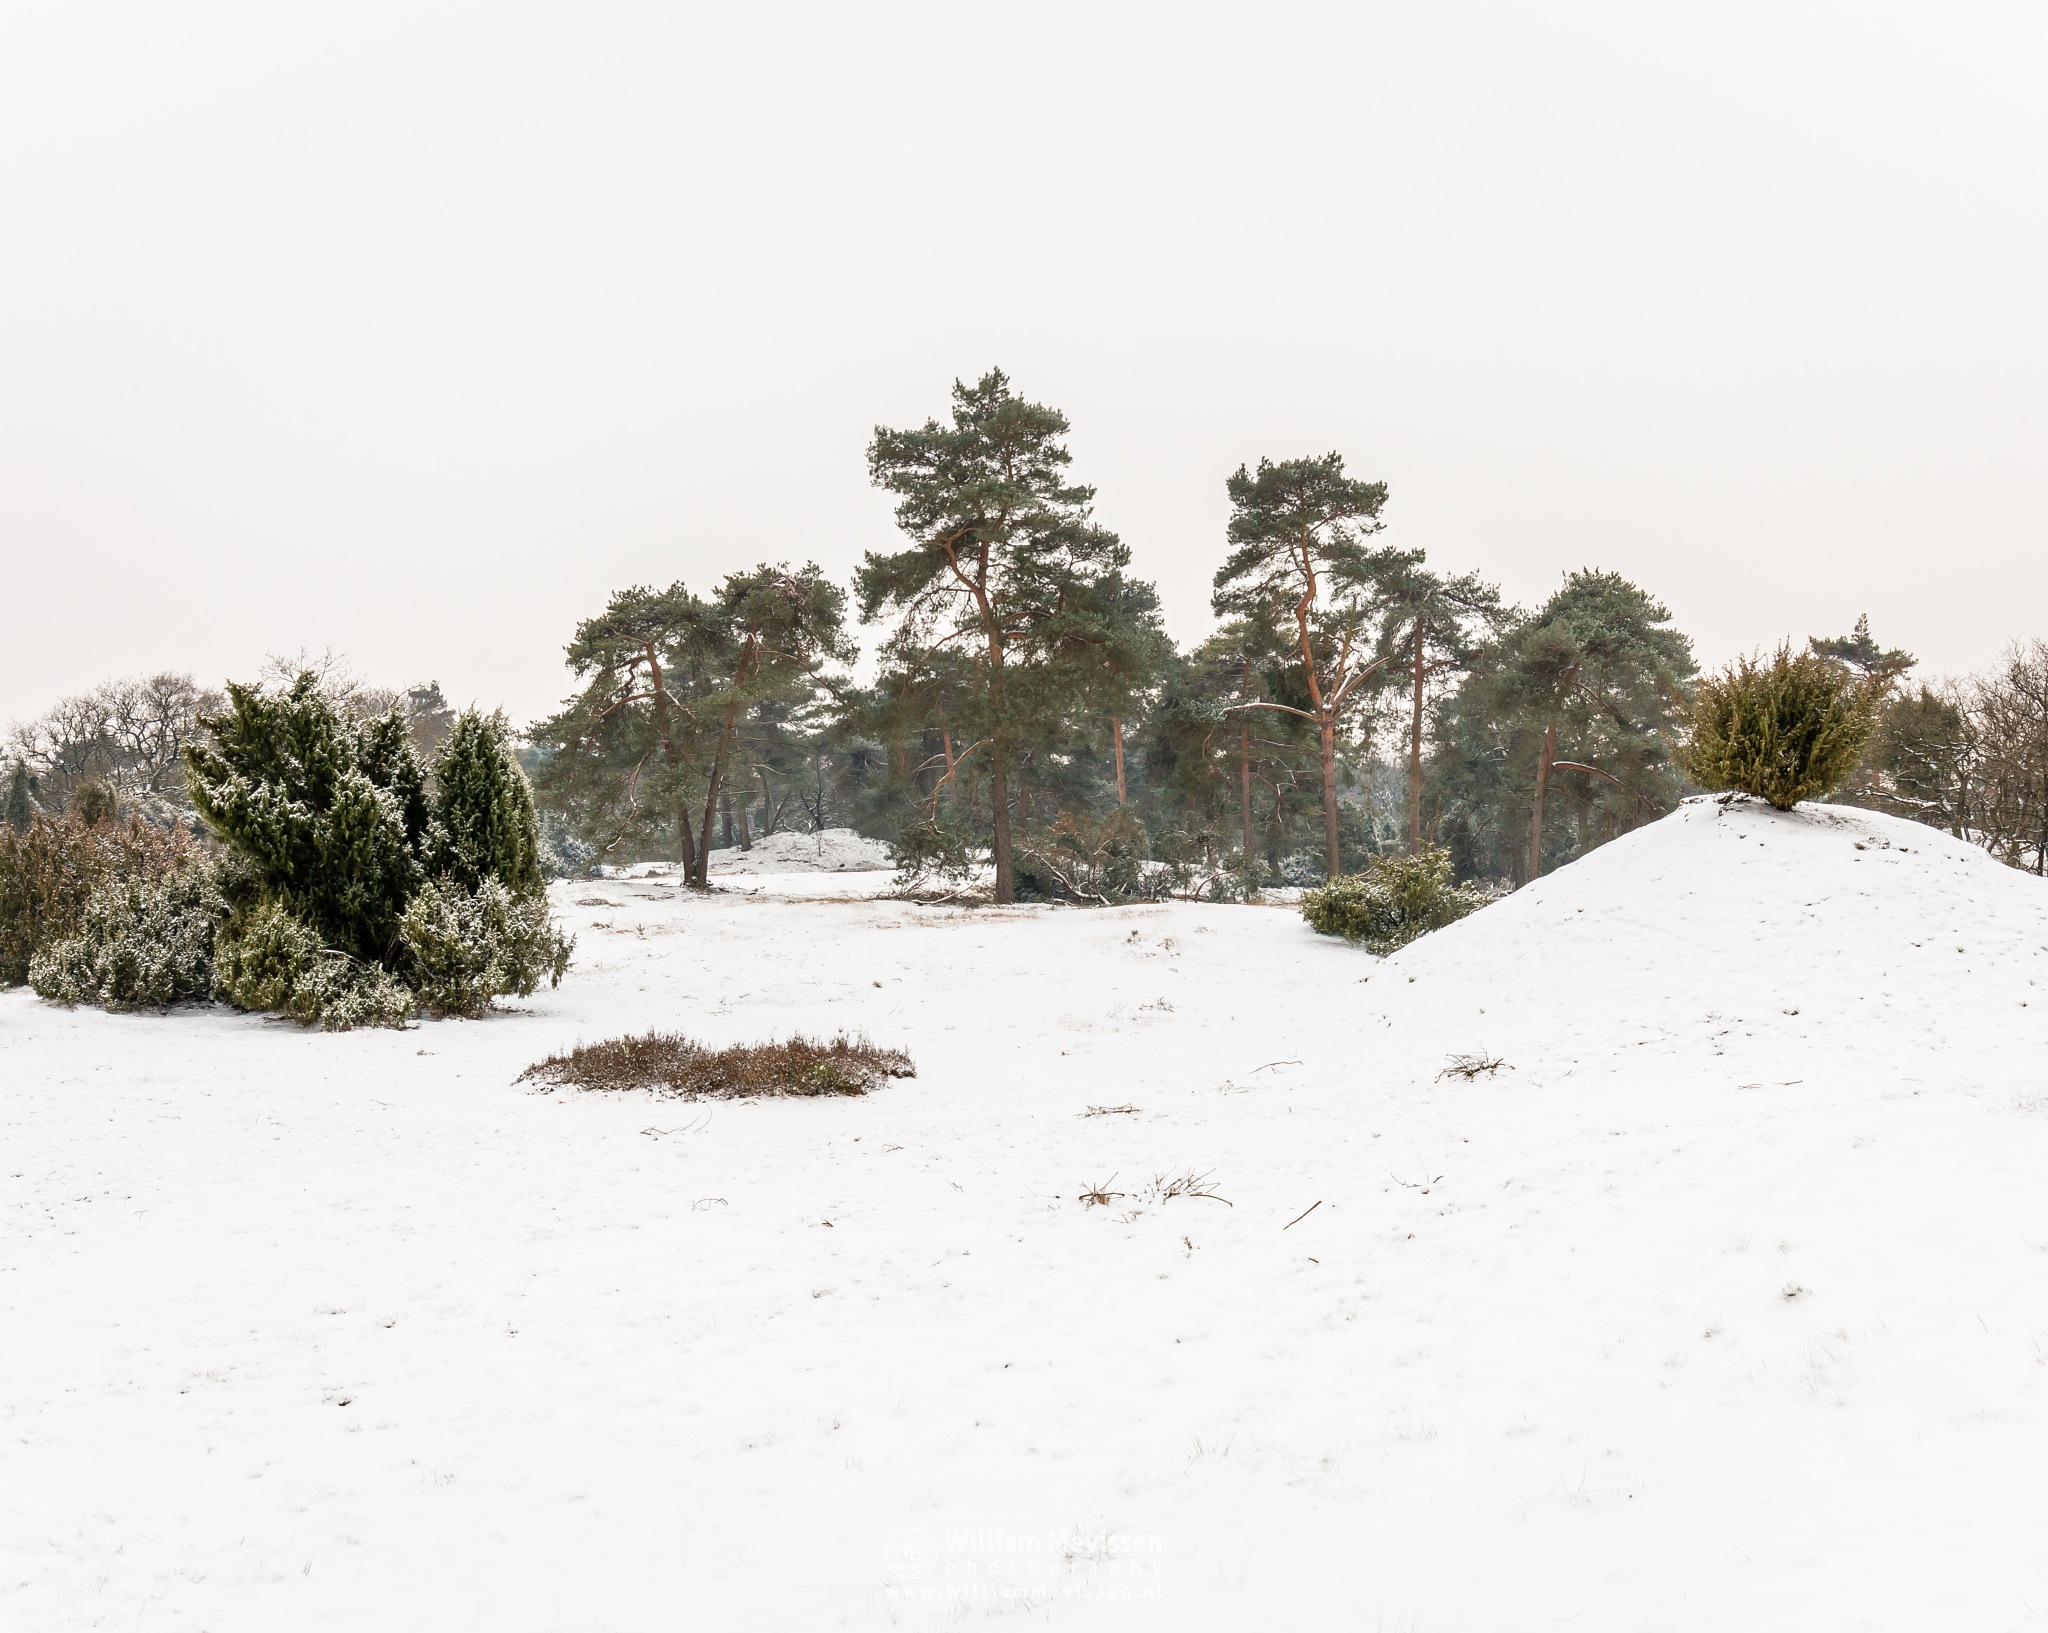 Winterscenery Boshuizerbergen by William Mevissen